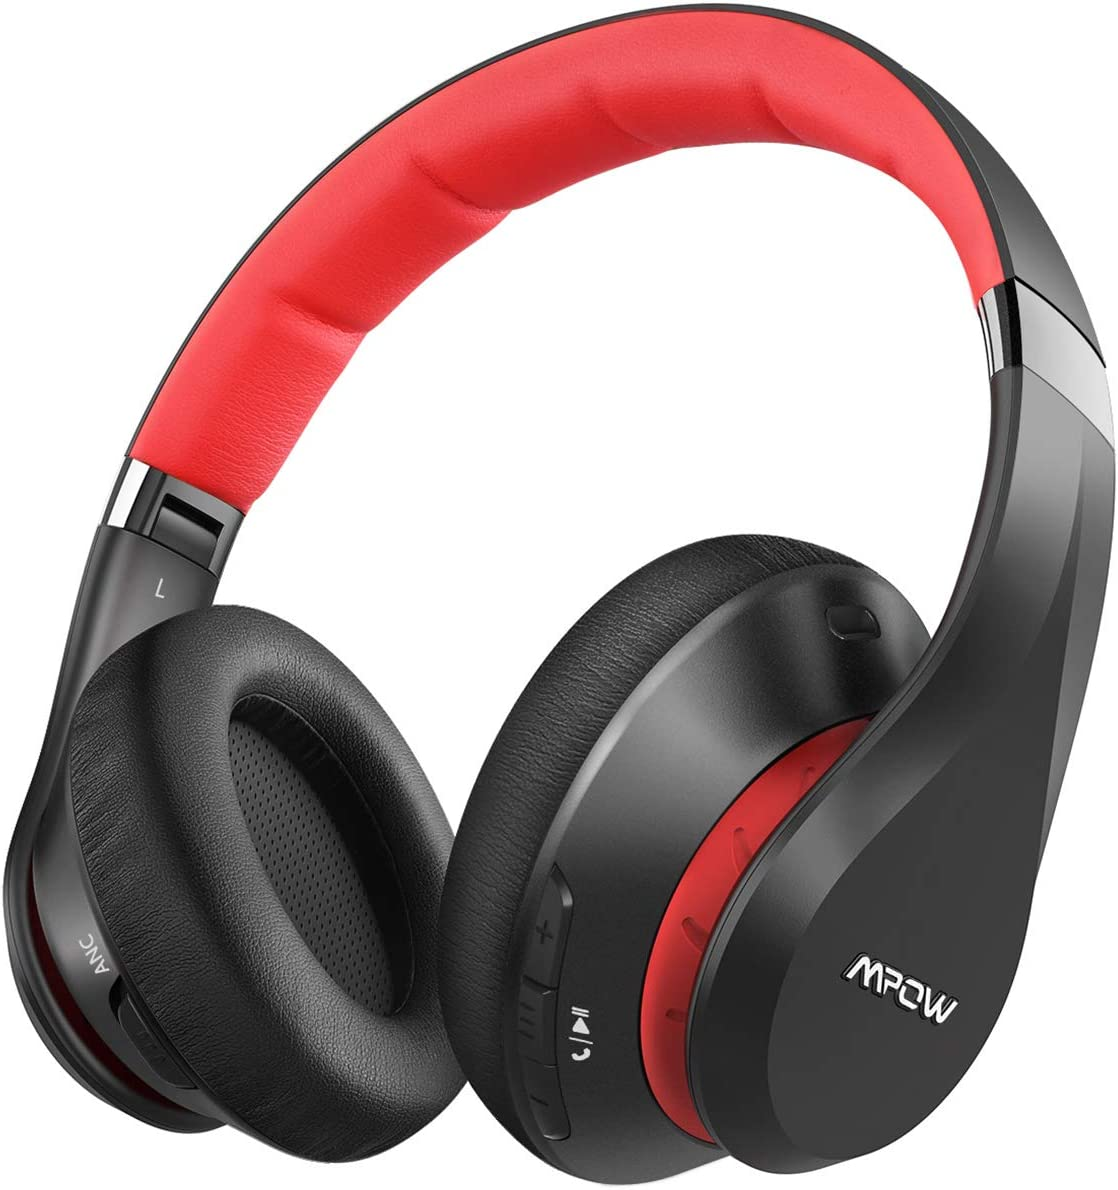 Mpow 059 Plus Active Noise Cancelling Headphones, Bluetooth Headphones Over Ear with 50 Hours Playtime, CVC 8.0 Noise-Cancelling Mic, Soft Memory Foam Ear Pads, Hi-fi Deep Bass